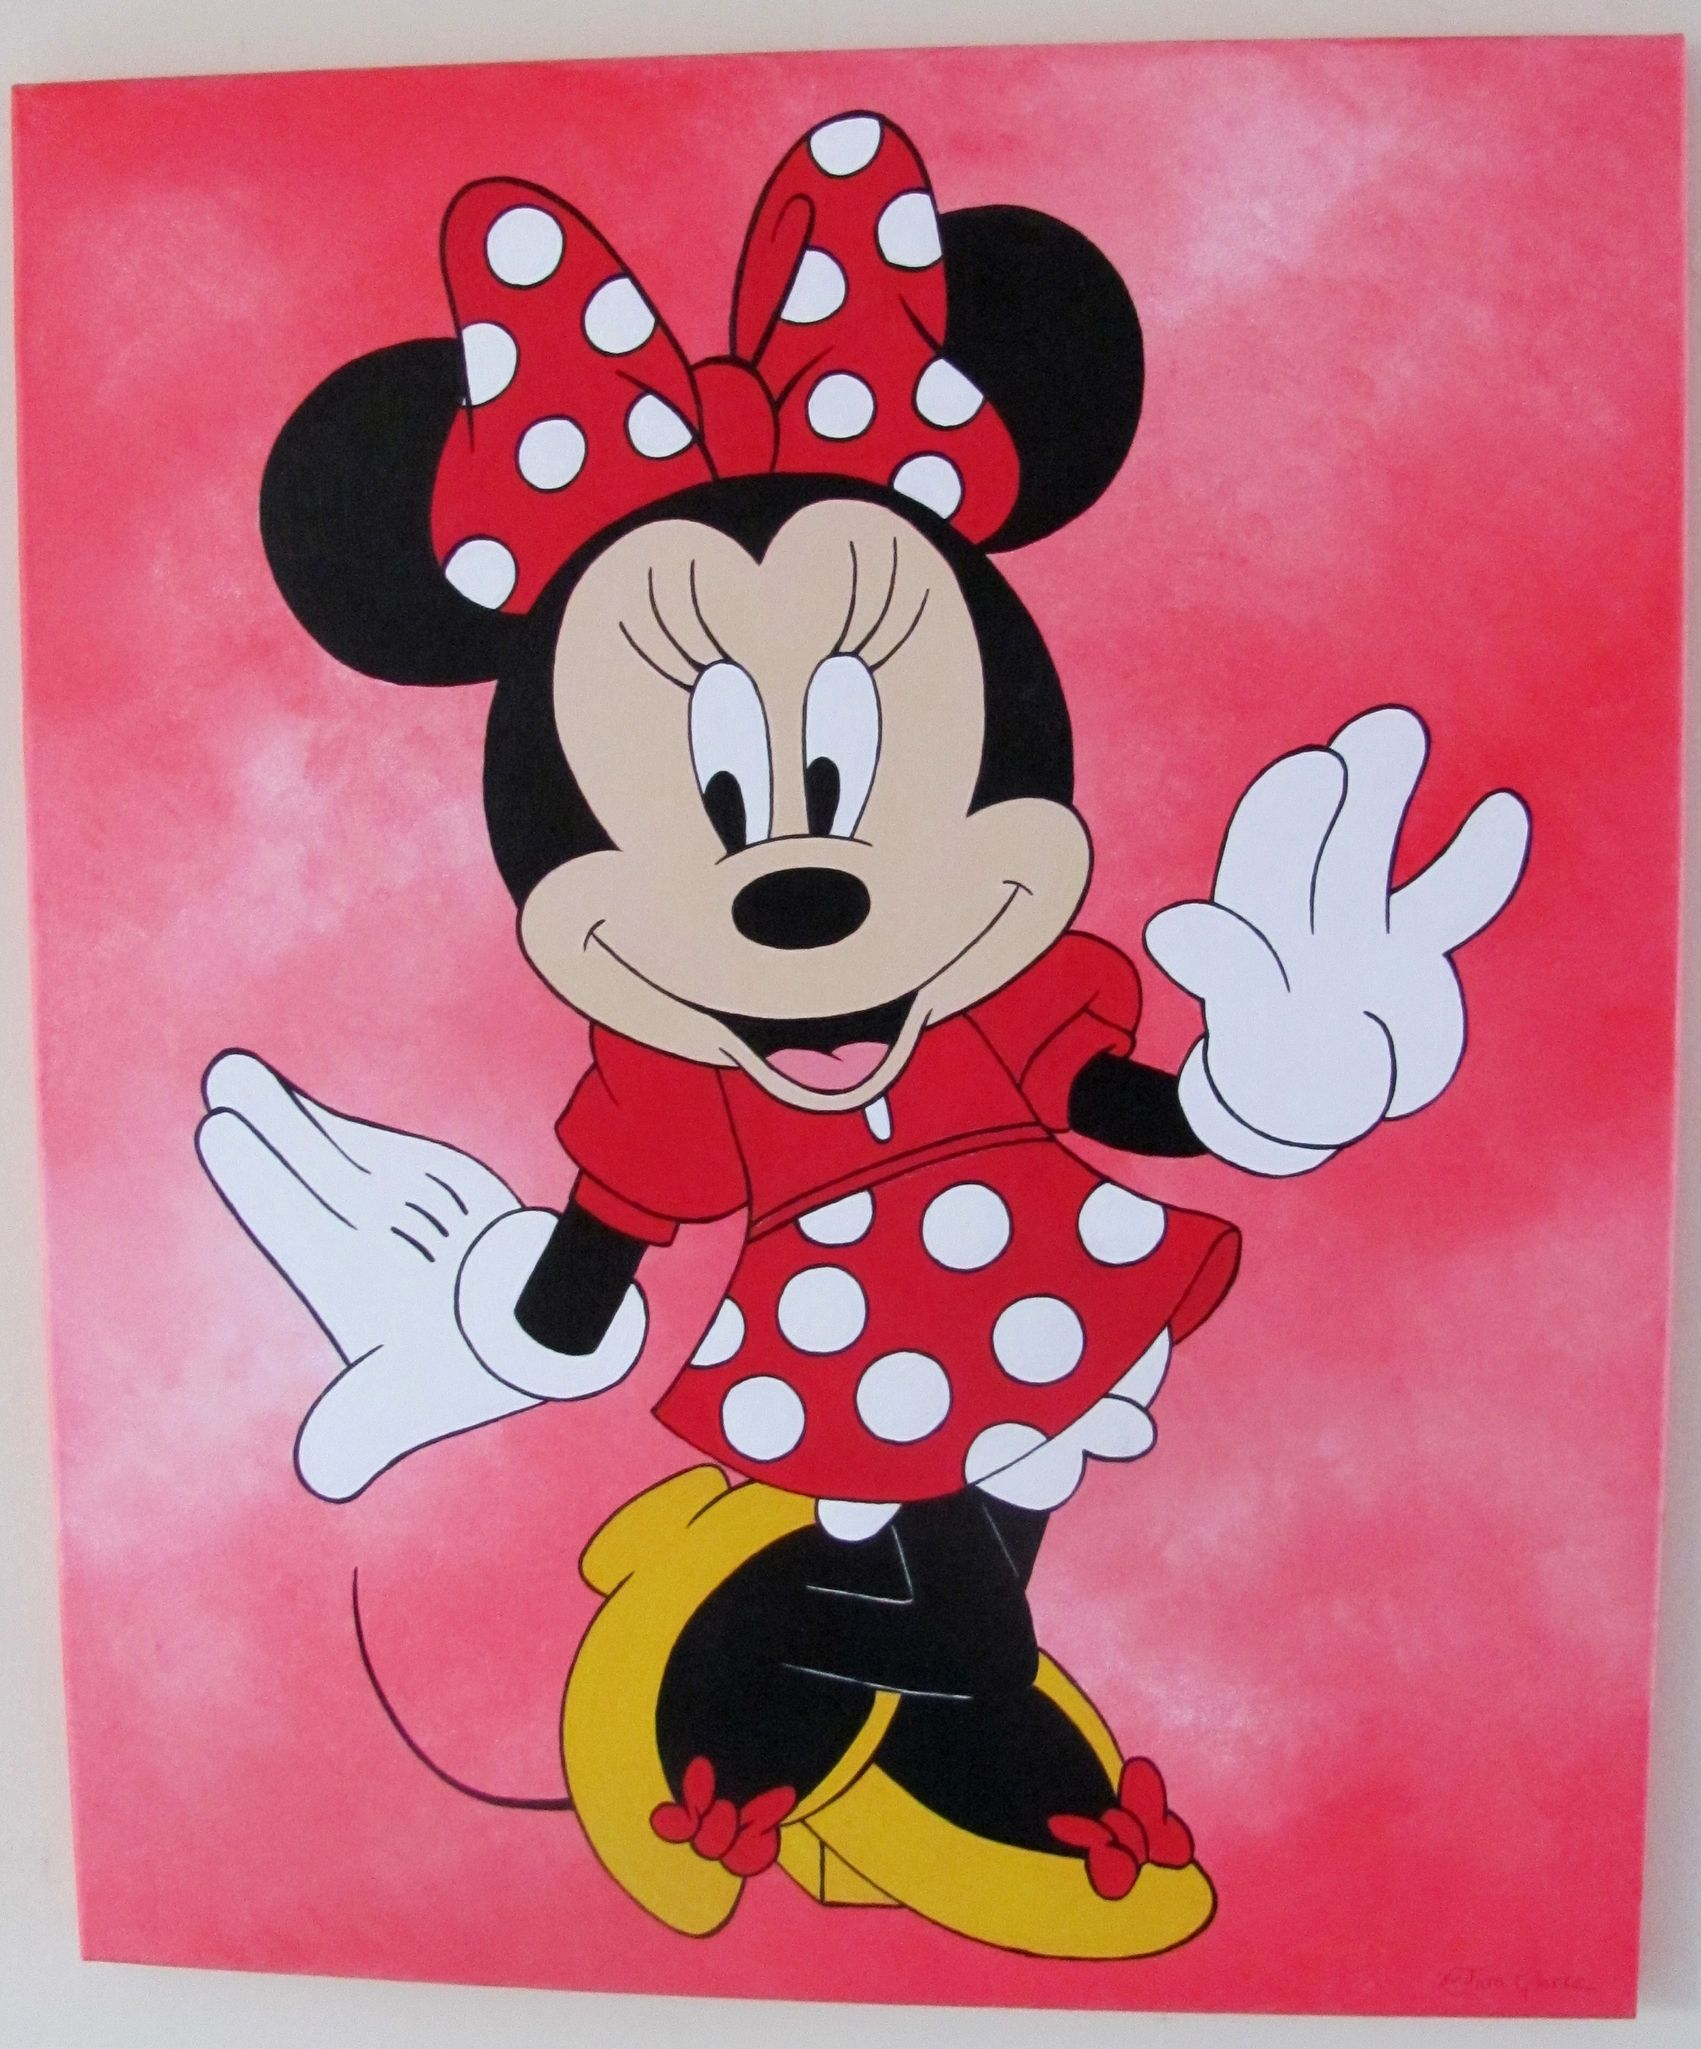 Minnie mouse wallpaper minniemouse - Minnie mouse wallpaper pinterest ...